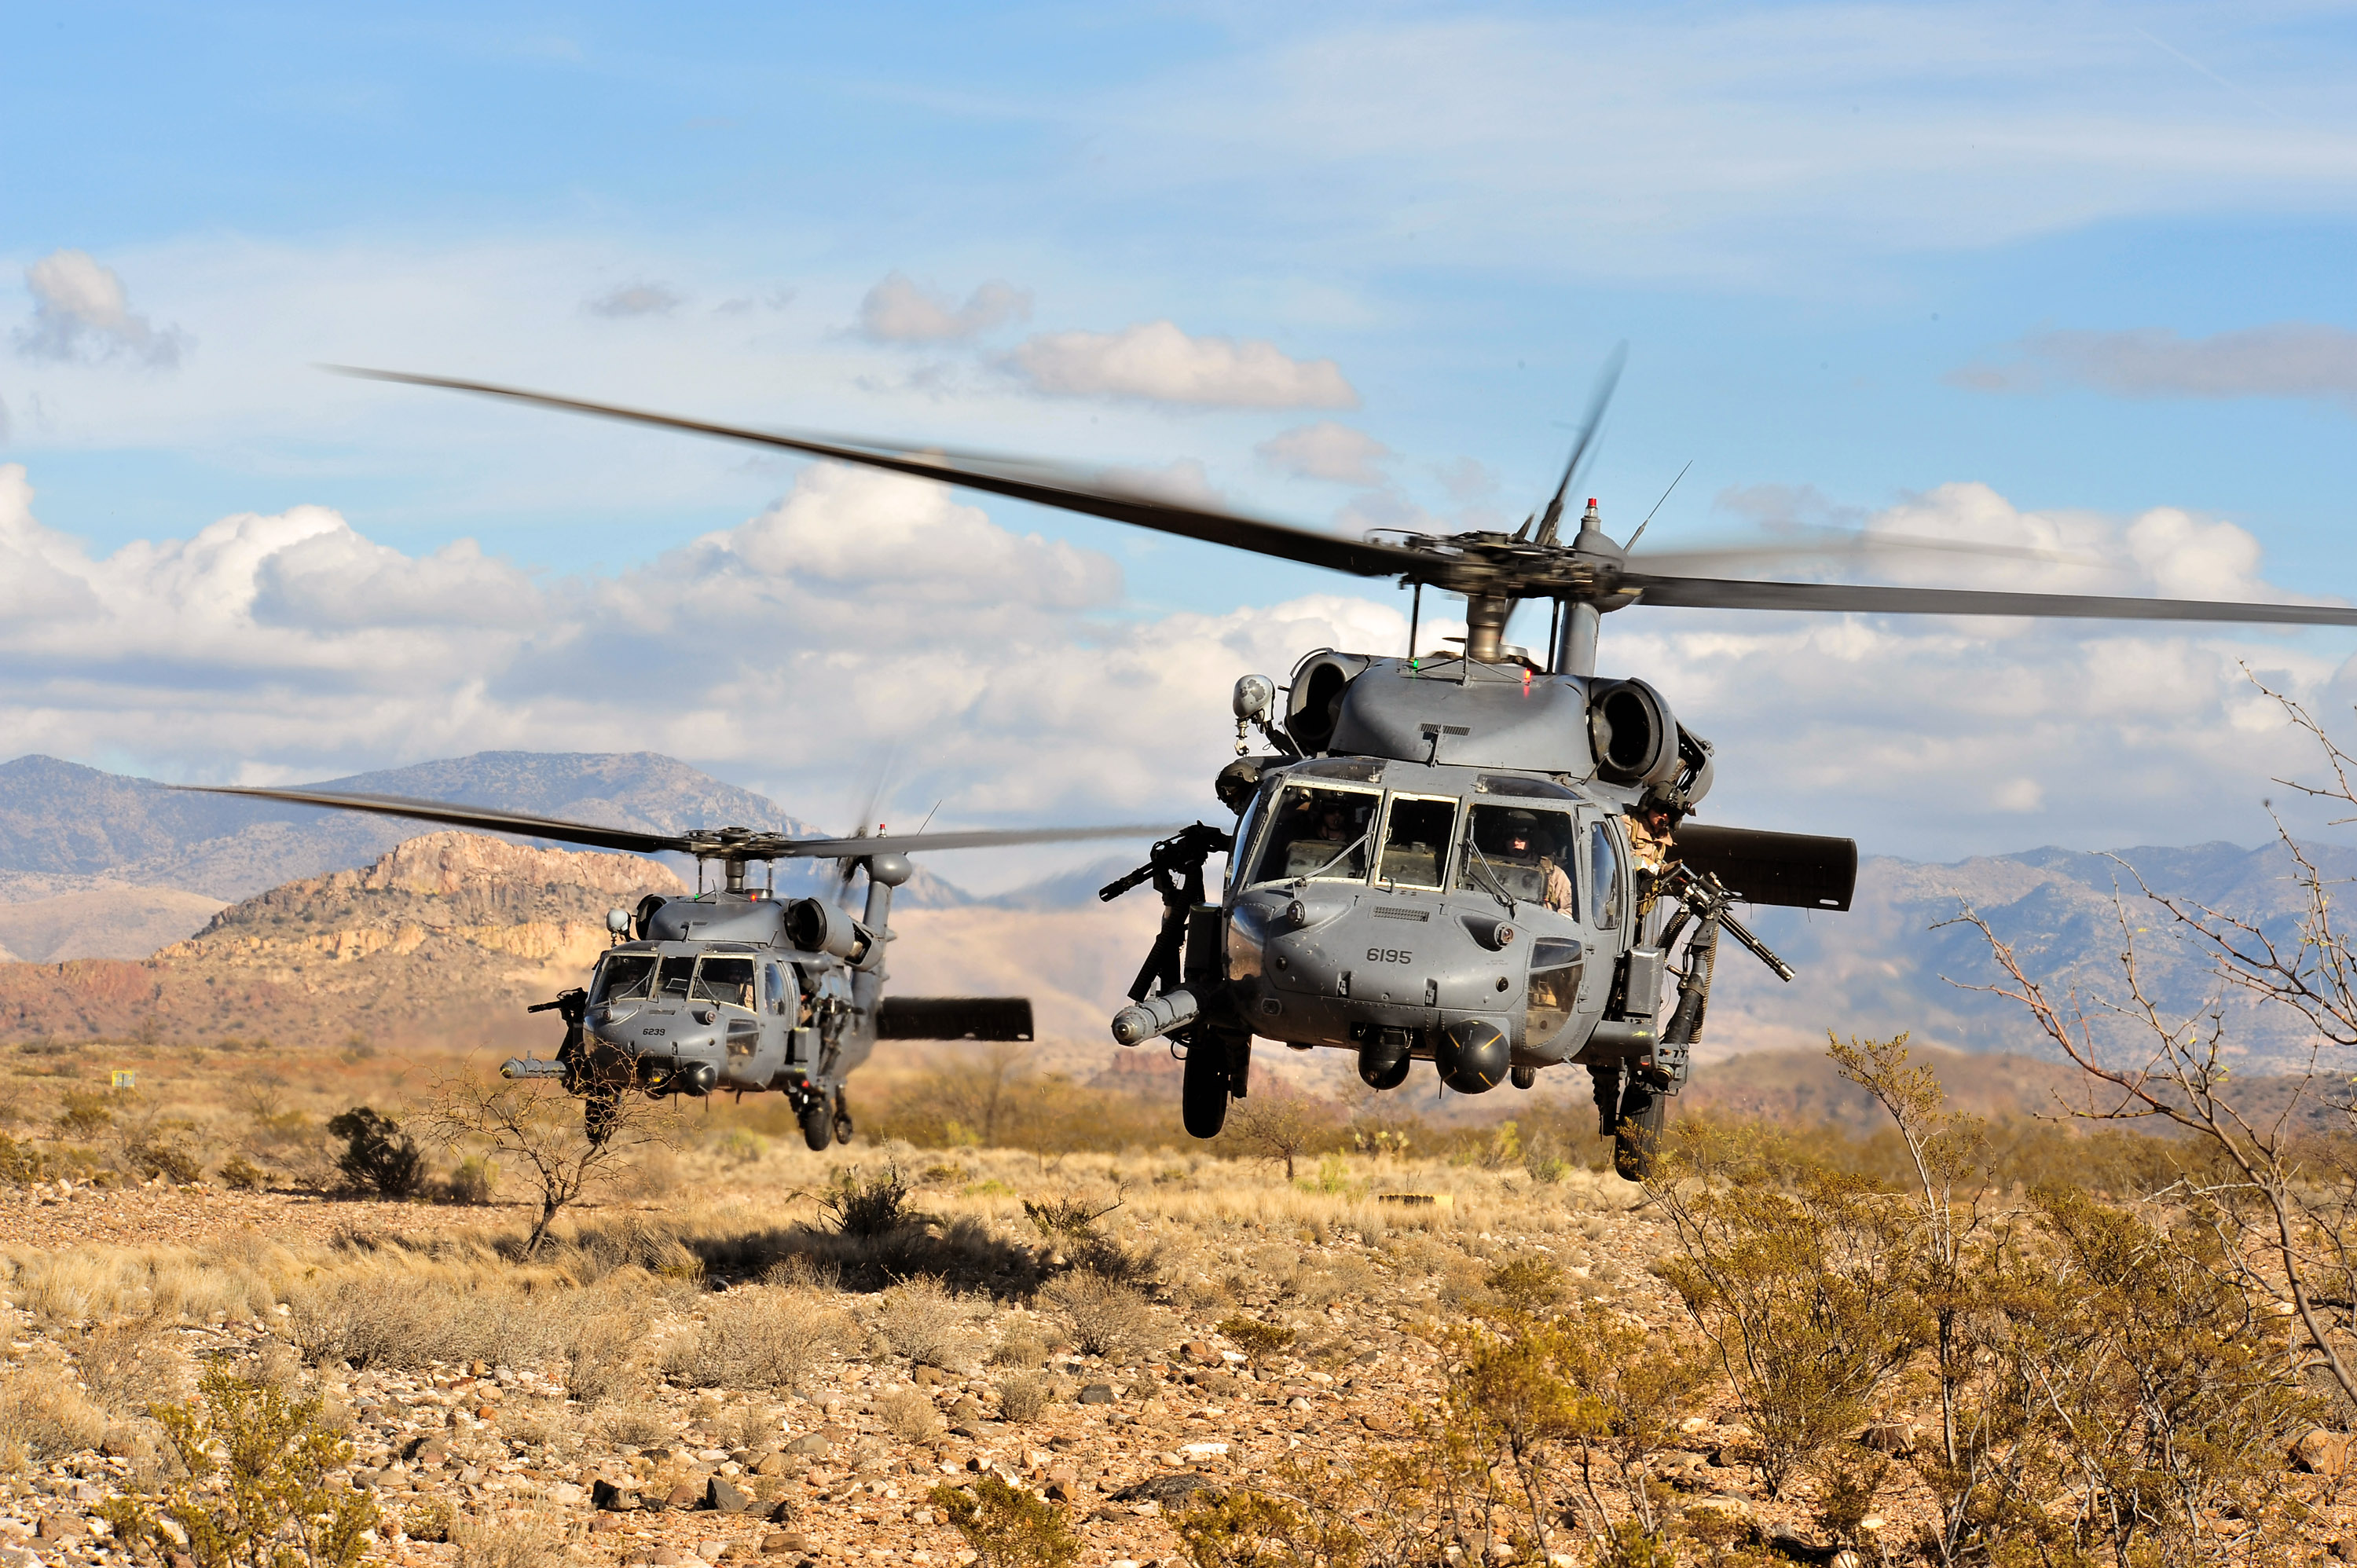 apache helicopter gunship with File Hh 60g Pave Hawks  Personnel Recovery Exercise   081207 F 1642j 104 on 7 Facts Of The Uh 60 Black Hawk Helicopter additionally 340514421798910998 also Stealth Chopper New besides The  anche as well Best Attack Helicopters In 2017.